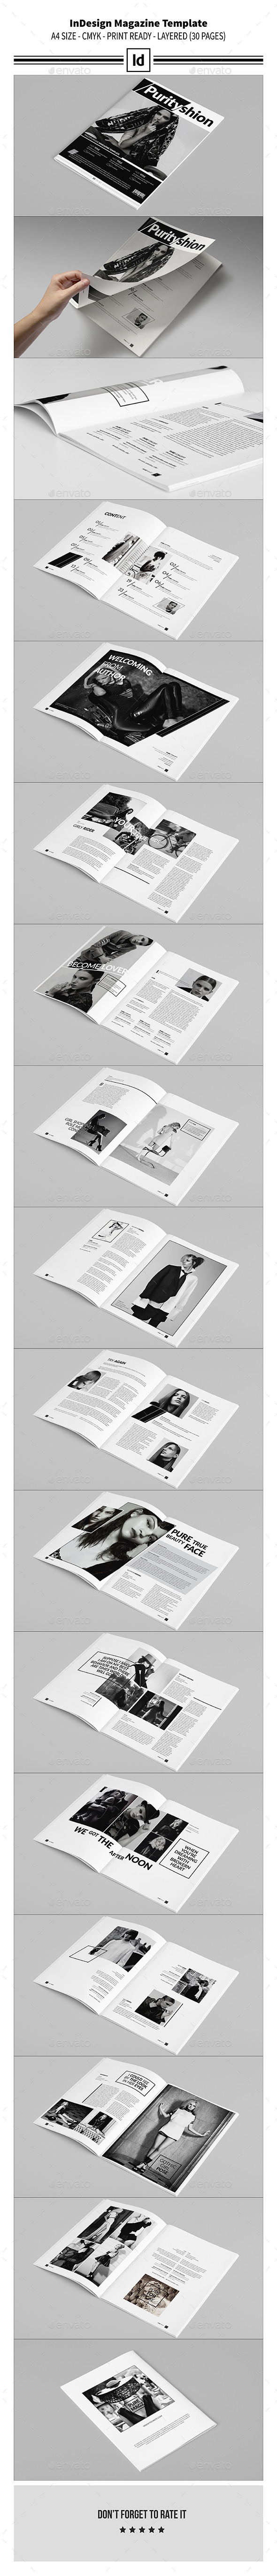 GraphicRiver InDesign Magazine Template 9864803